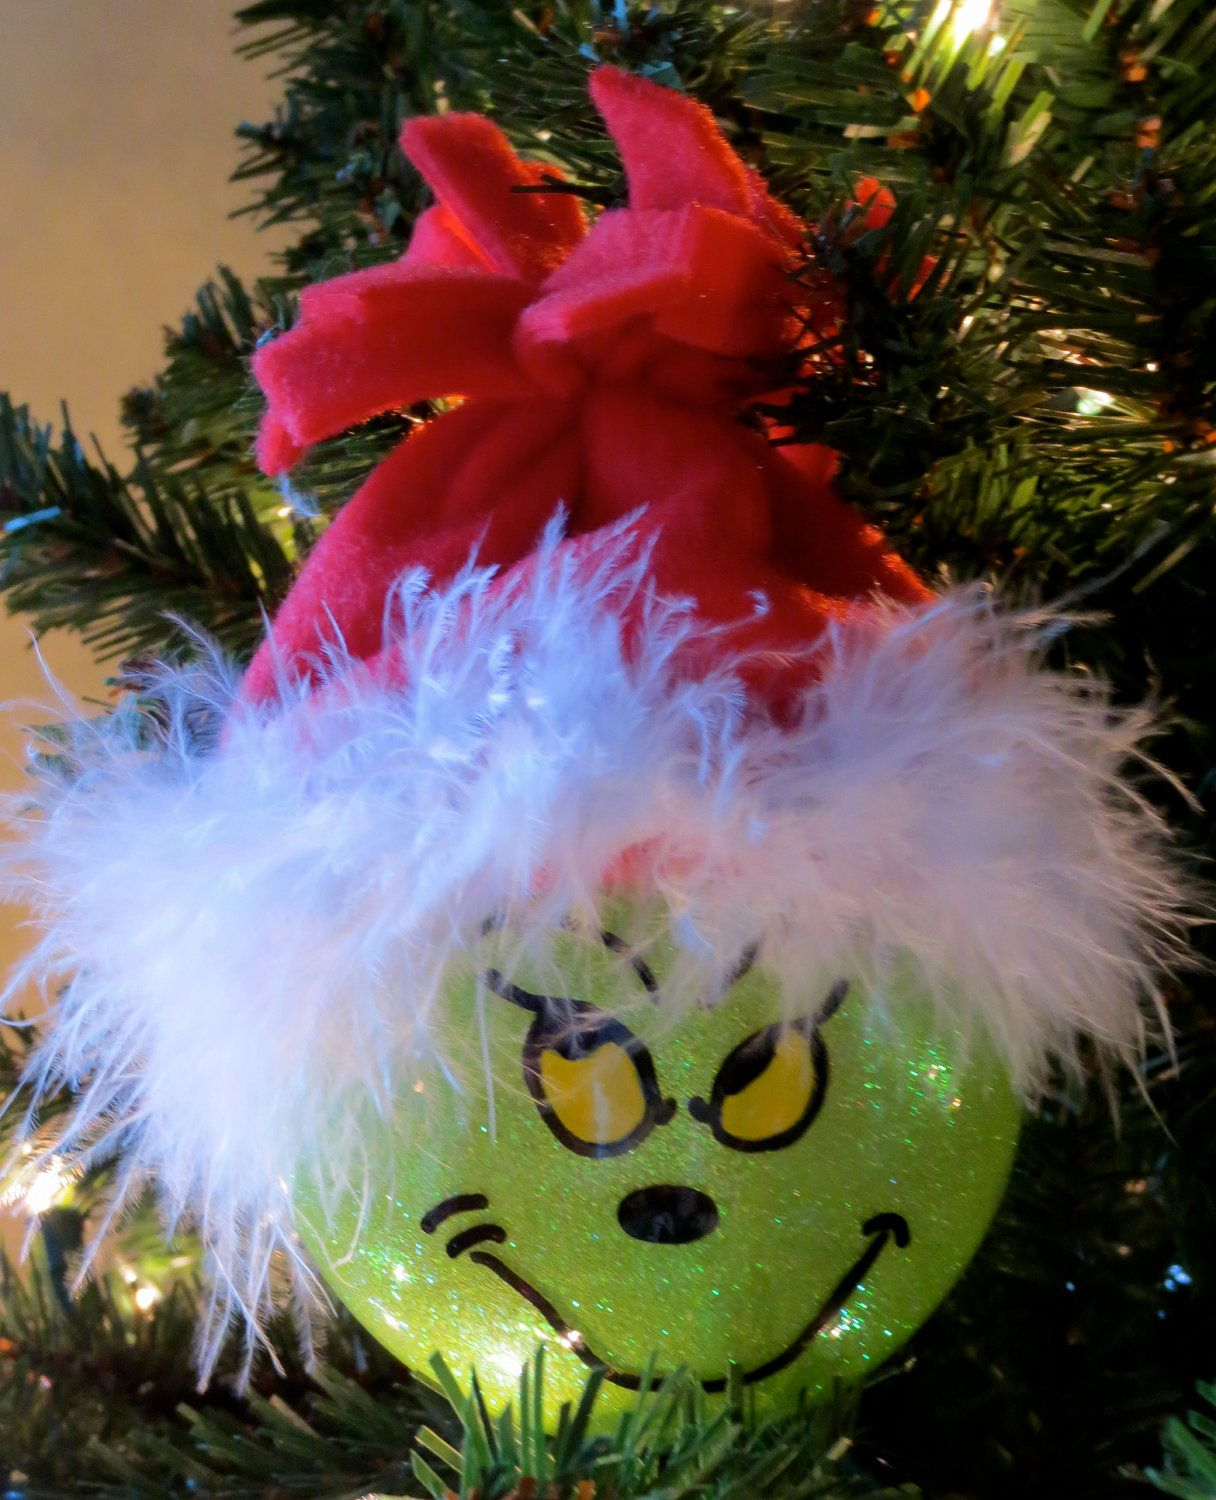 The Grinch Ornament Christmas Ornaments Handmade Christmas Ornaments Christmas Diy